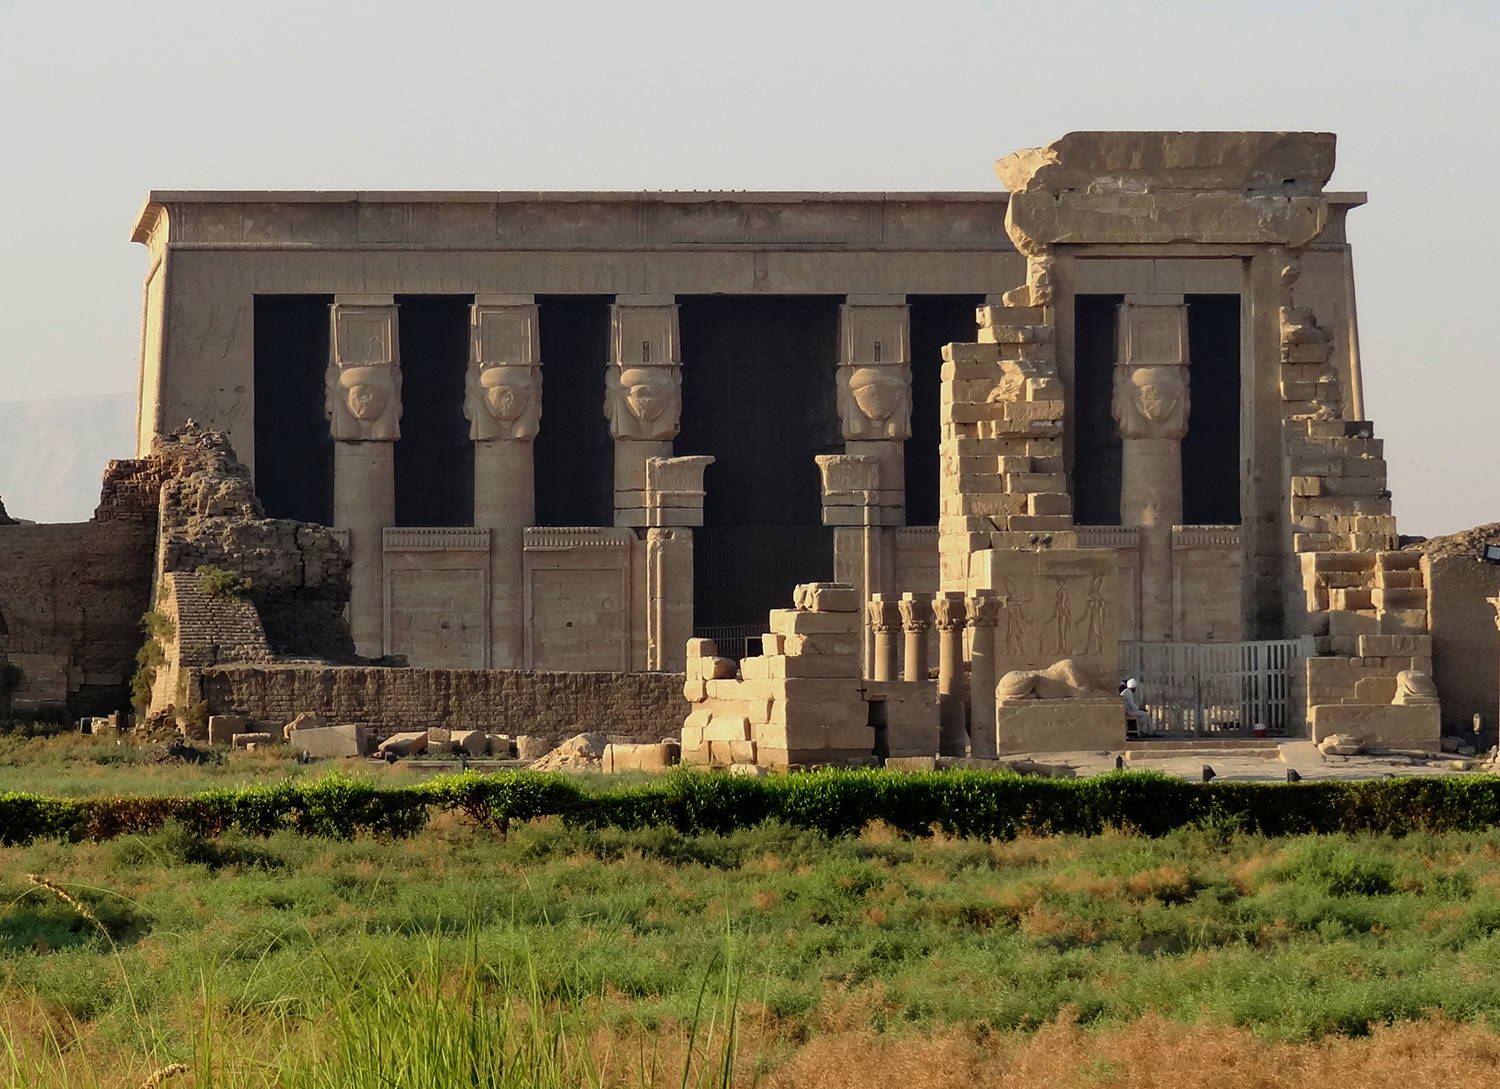 Figure 23: The temple of Hathor at the site of Dendereh was the goddess's main cult center. The columns in this temple have capitals in the shape of Hathor heads. Photo courtesy of Olaf Tausch.